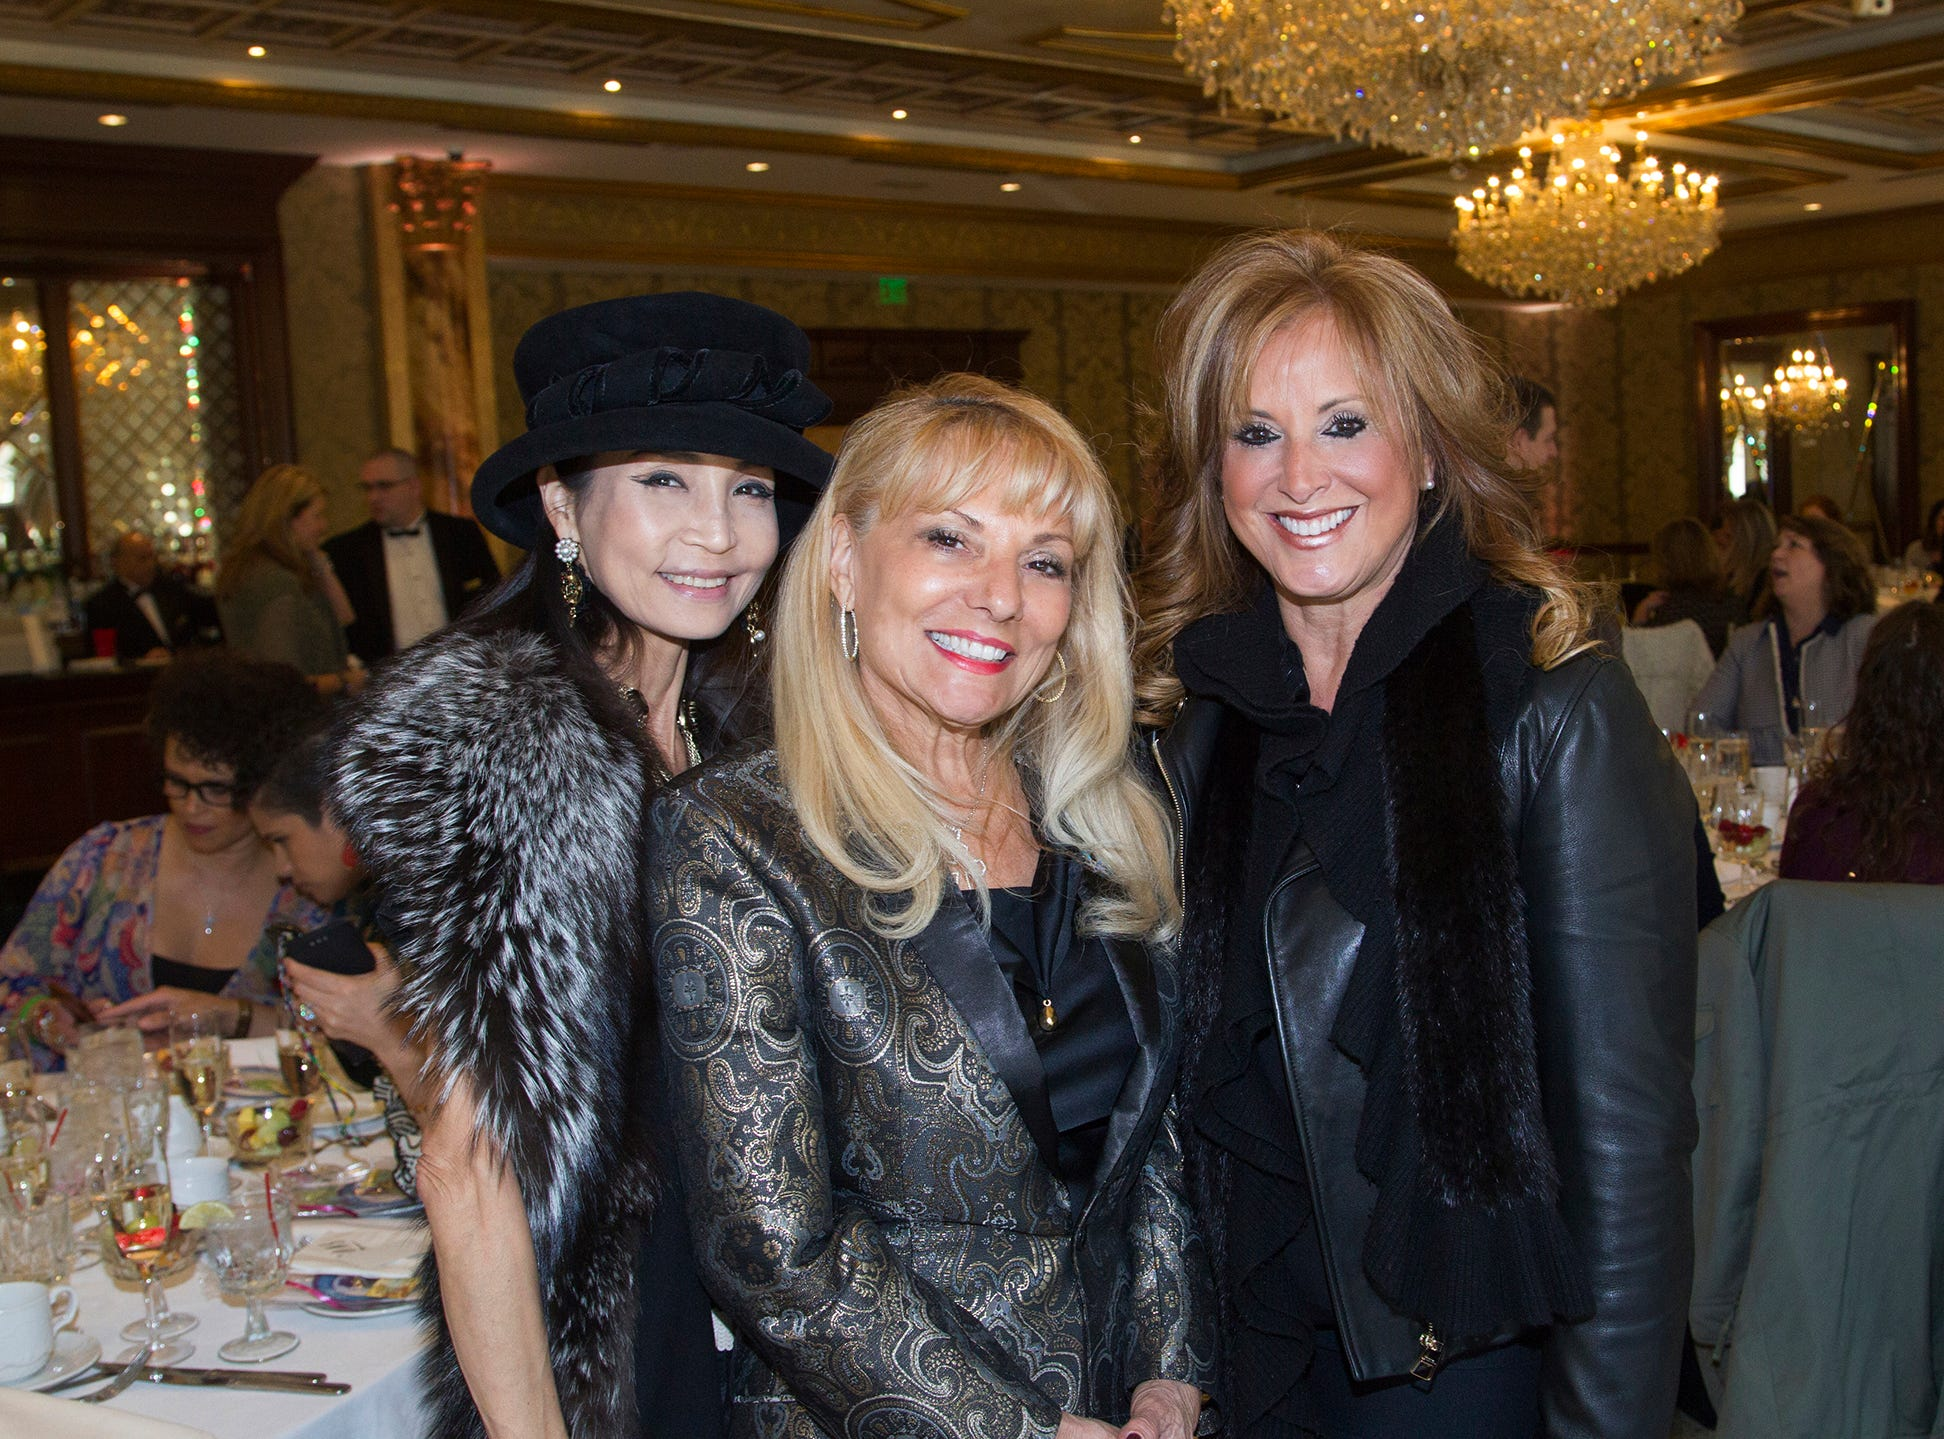 Heather Won Choi, Ro Sorce, Bonnie Inserra. Josephine's Garden, part of Hackensack Meridian Health, held its luncheon gala at Season's in Washington Township. The mission of this organization is to provide a place of respite, joy and hope to children battling cancer. 11/14/2018